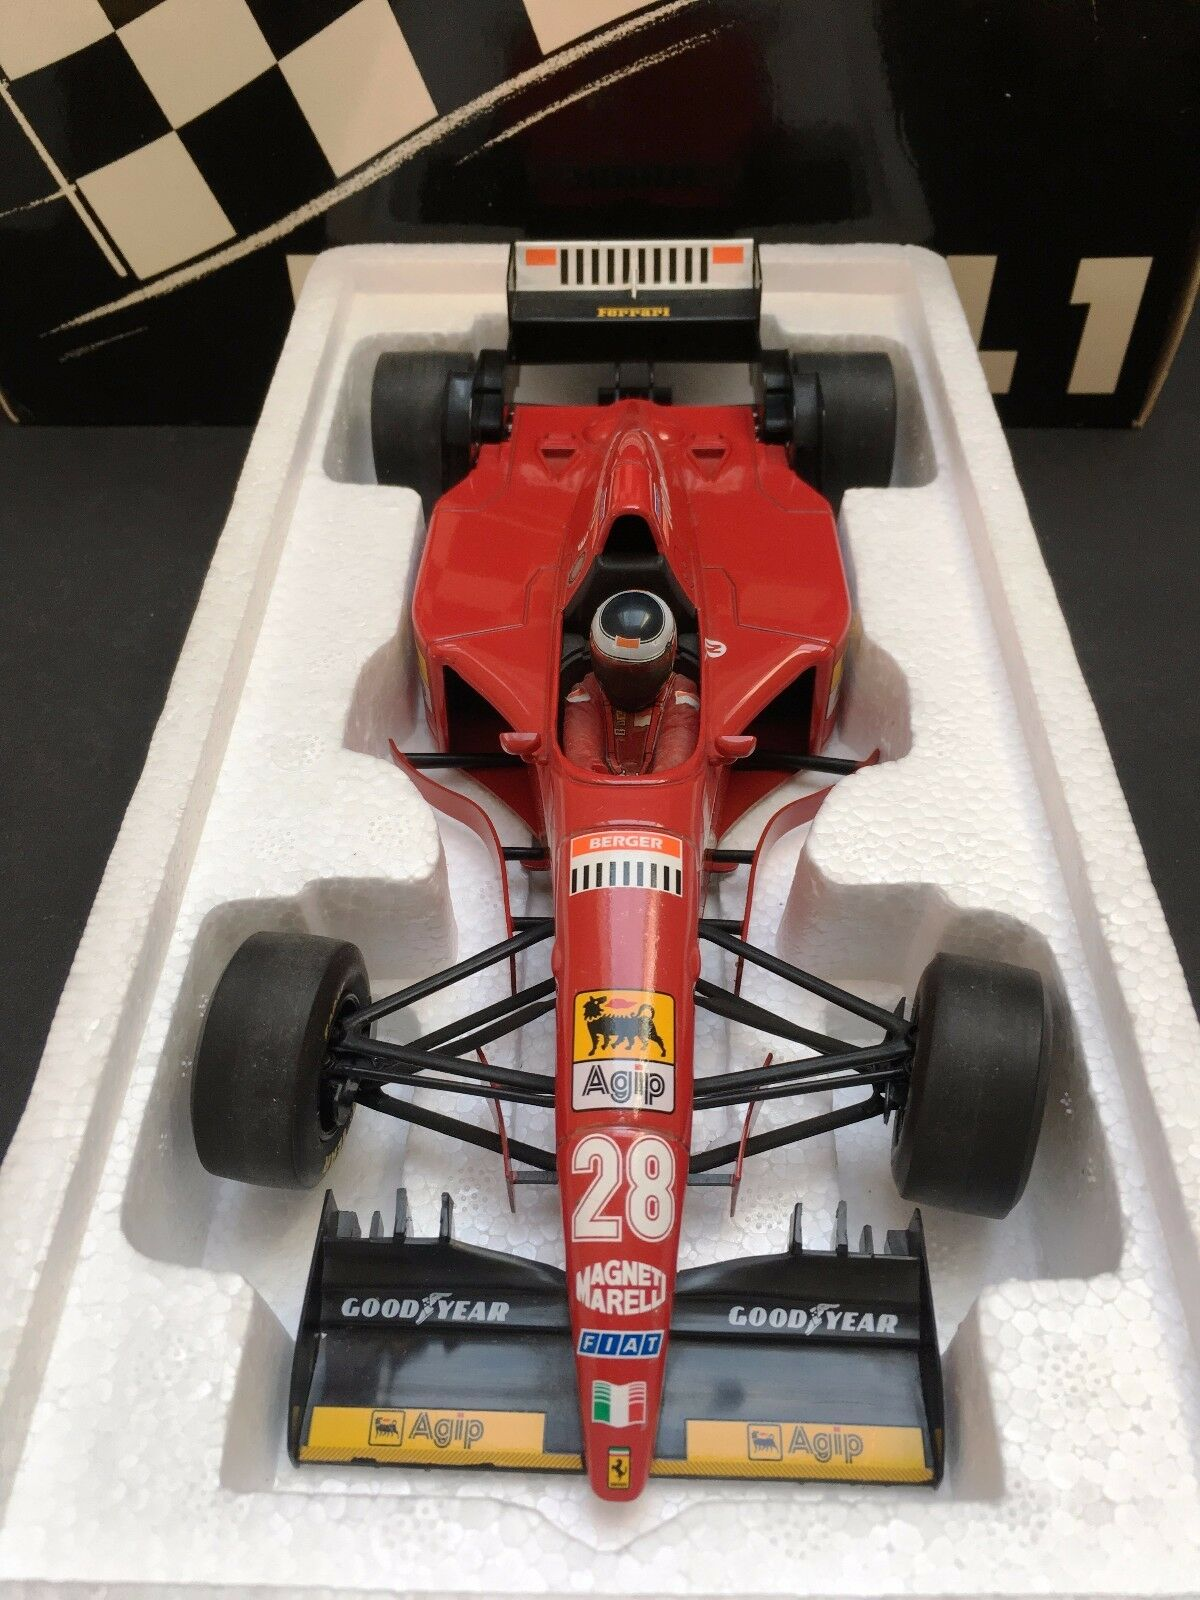 Minichamps - Gerhard Berger - Ferrari - 412T2 - 1995 - 1:18 - Closed Box - Rare